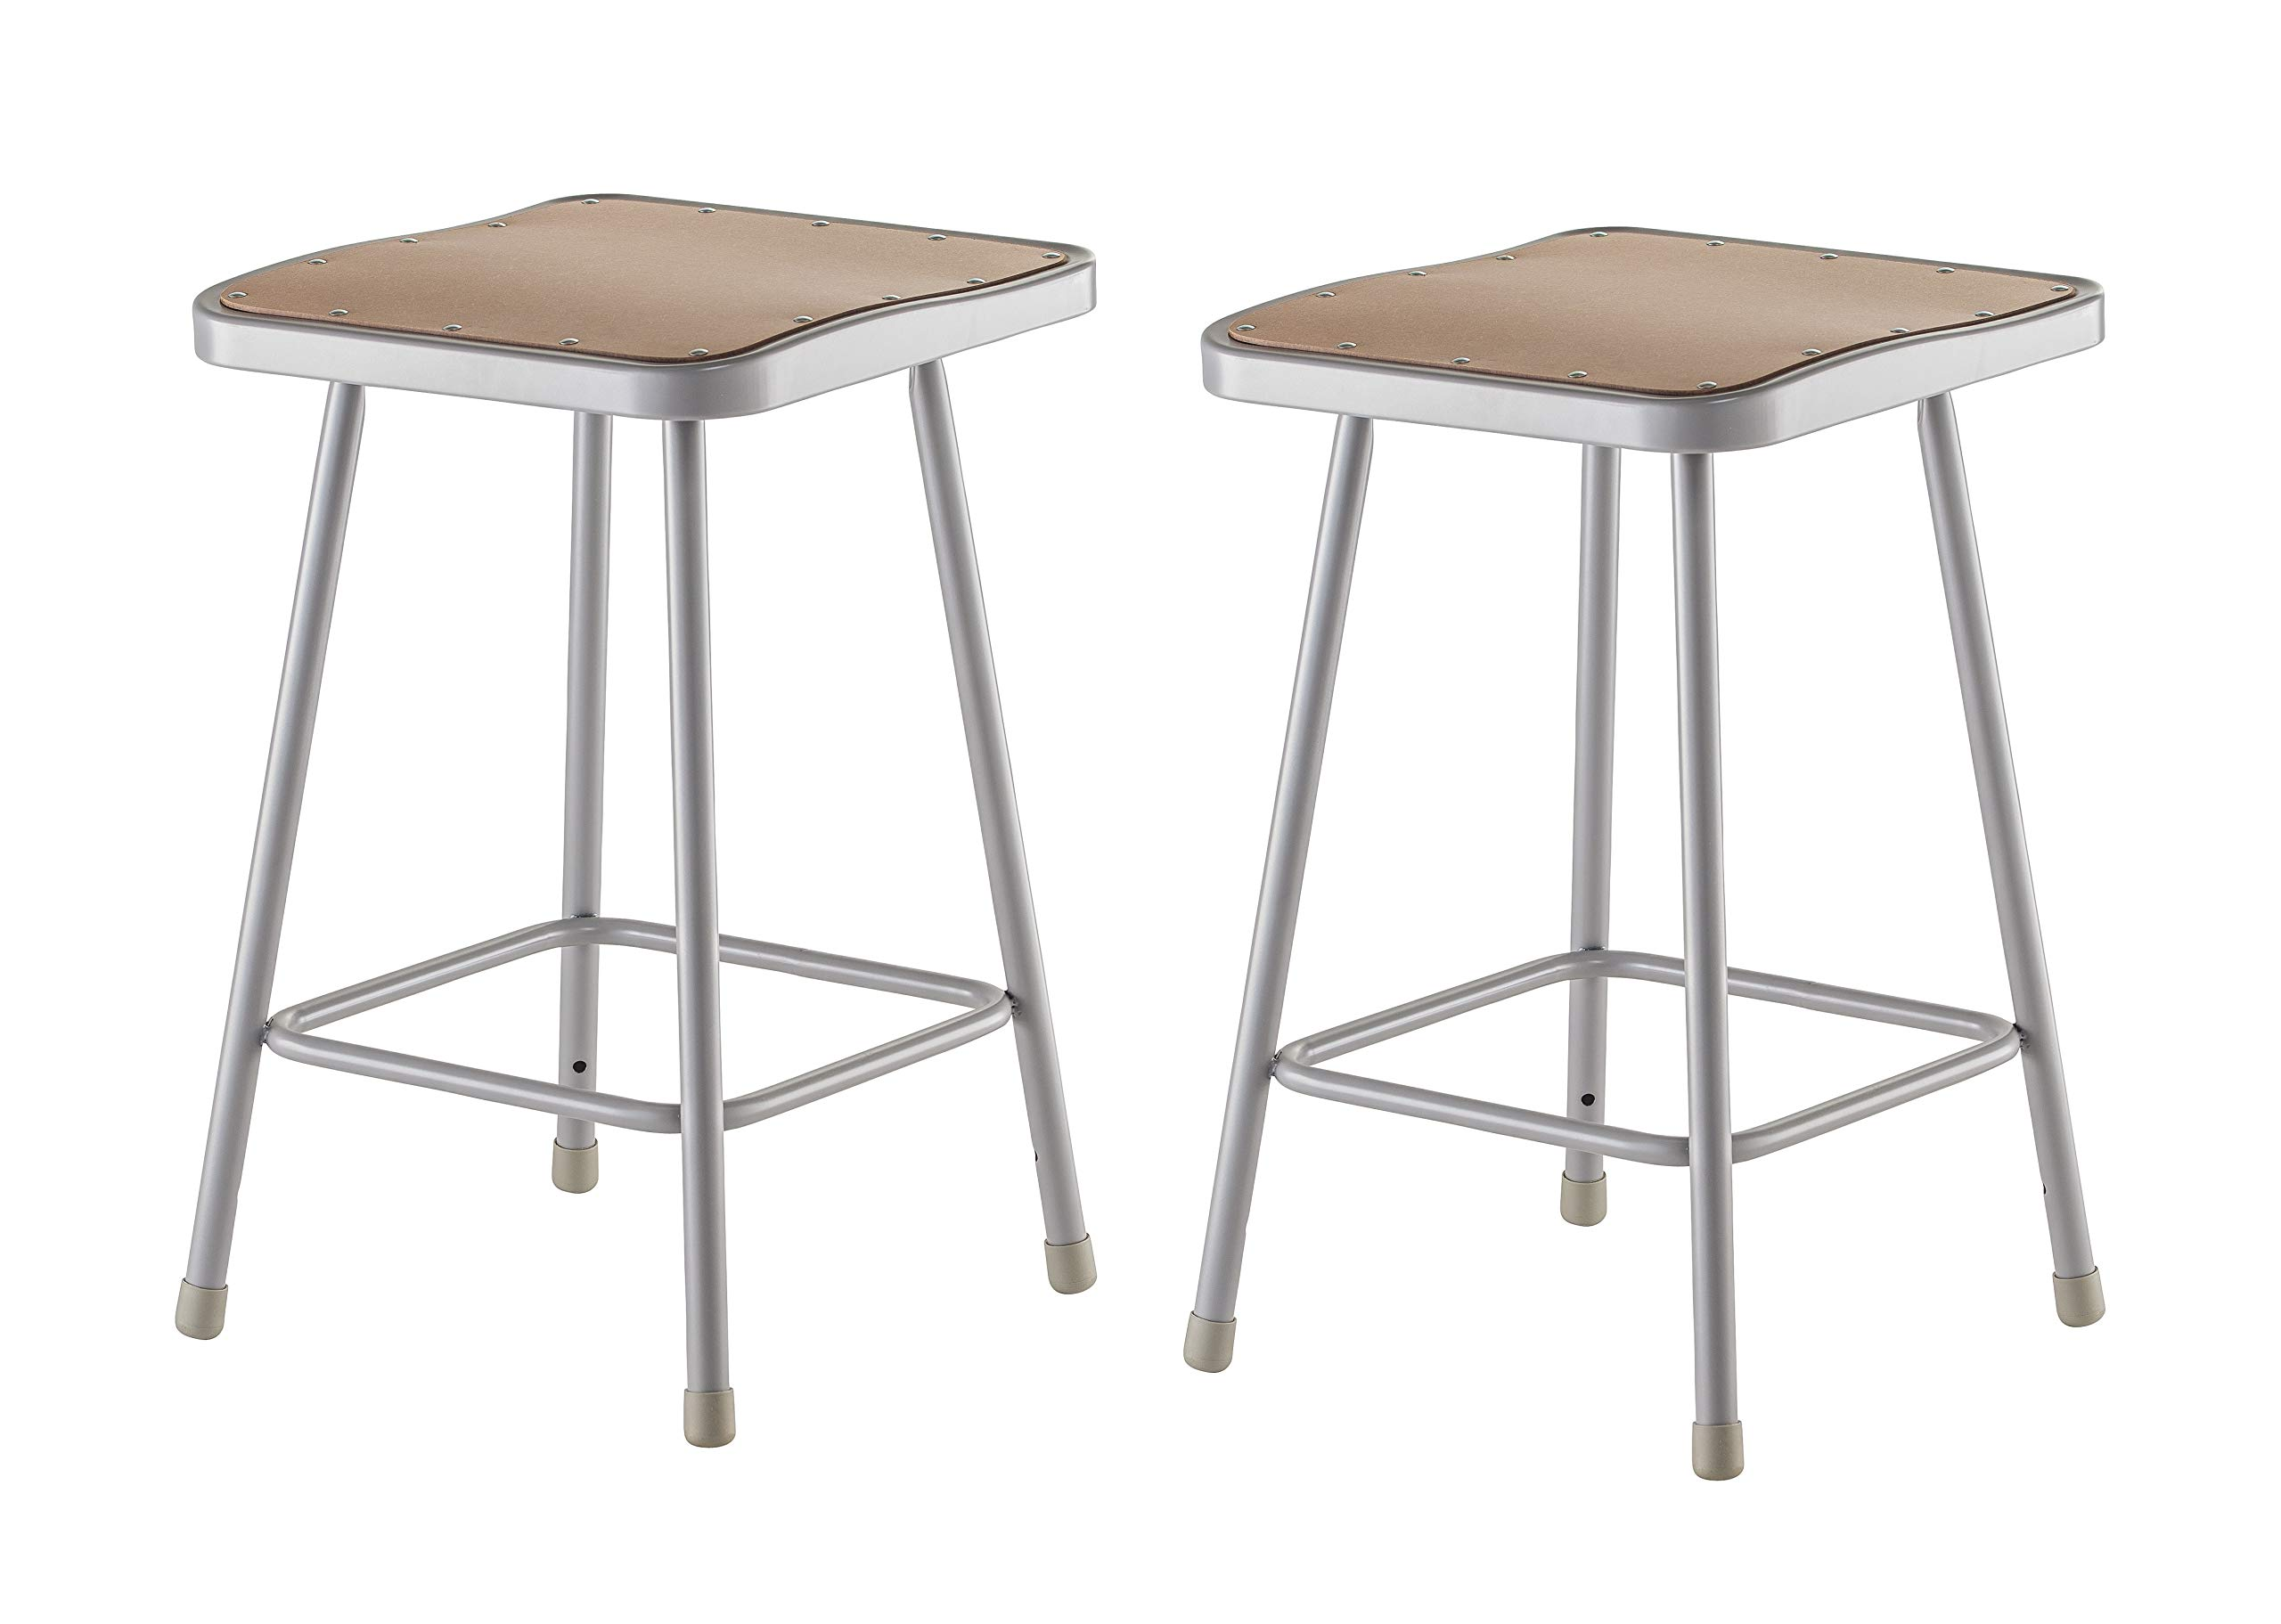 National Public Seating 6324-CN Steel Stool with Square 24'' Hardboard Seat, Grey (Pack of 2)